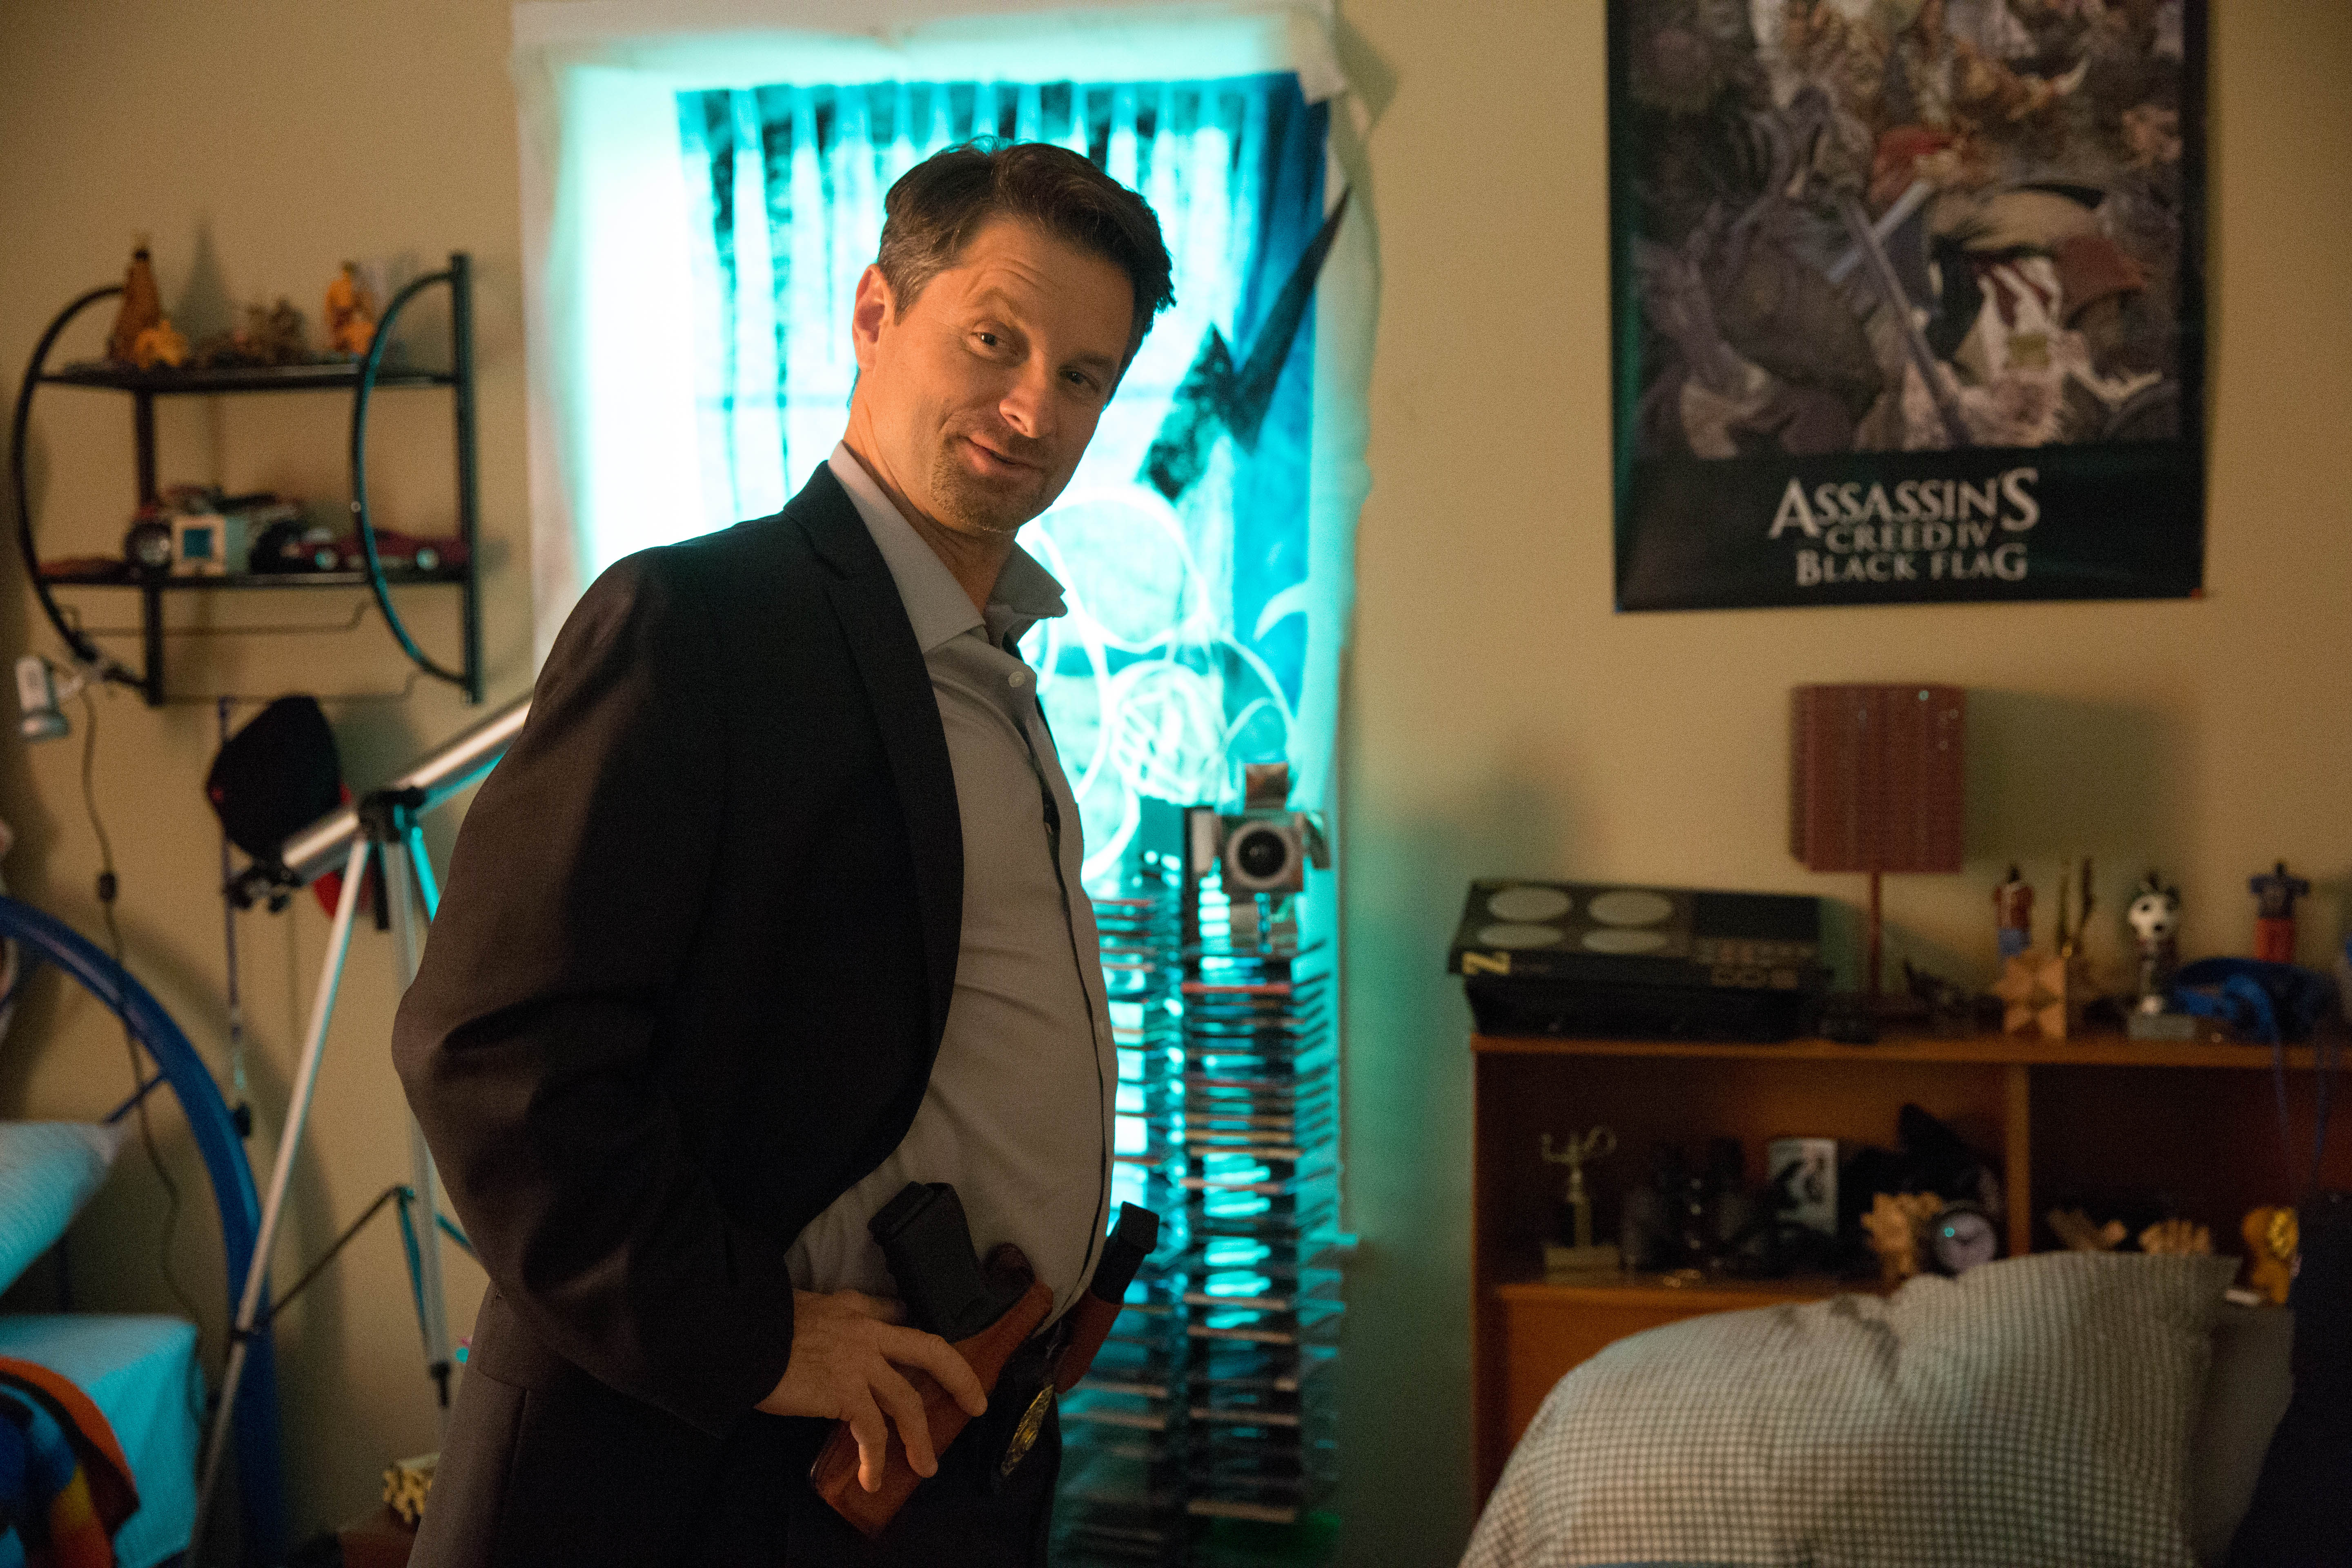 shea whigham twittershea whigham kong, shea whigham run the jewels, shea whigham true detective, shea whigham fargo, shea whigham american hustle, shea whigham twitter, shea whigham wife, shea whigham, shea whigham imdb, shea whigham height, shea whigham gogol bordello, shea whigham facebook, shea whigham music video, shea whigham bad lieutenant, shea whigham net worth, shea whigham justified, shea whigham weight loss, shea whigham agent carter, shea whigham interview, shea whigham shirtless